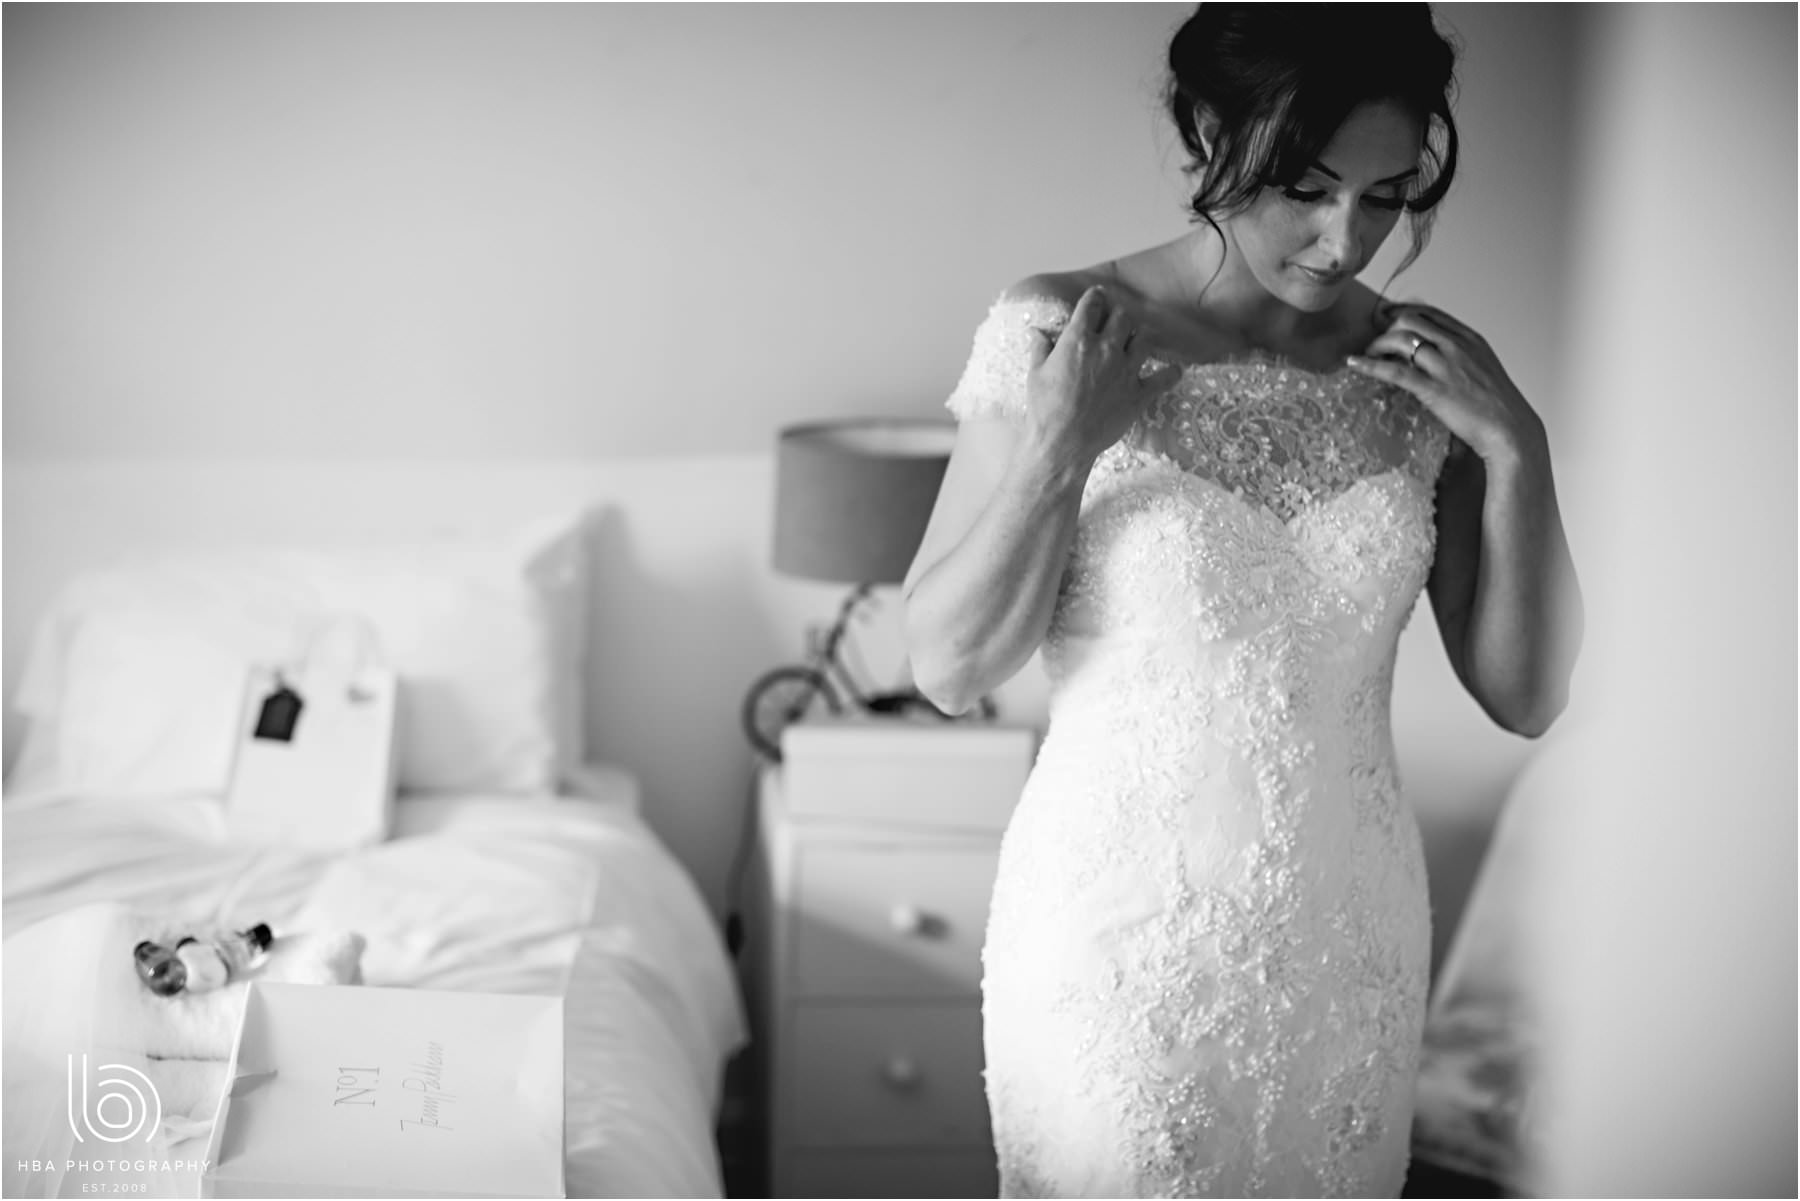 the bride putting her weding dress on